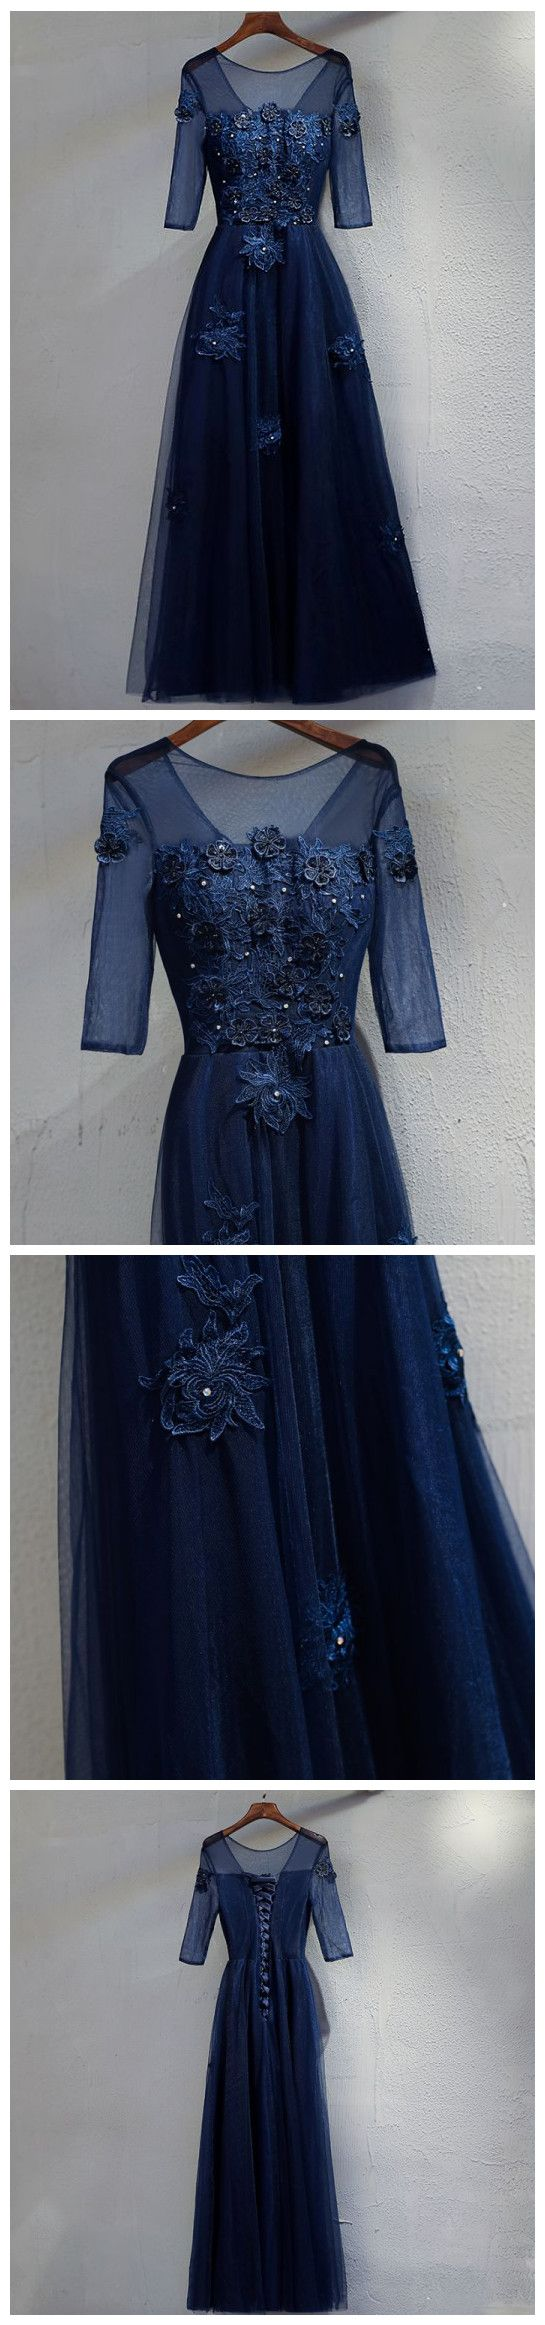 Dark navy prom dresses long aline half sleeve beautiful prom dress